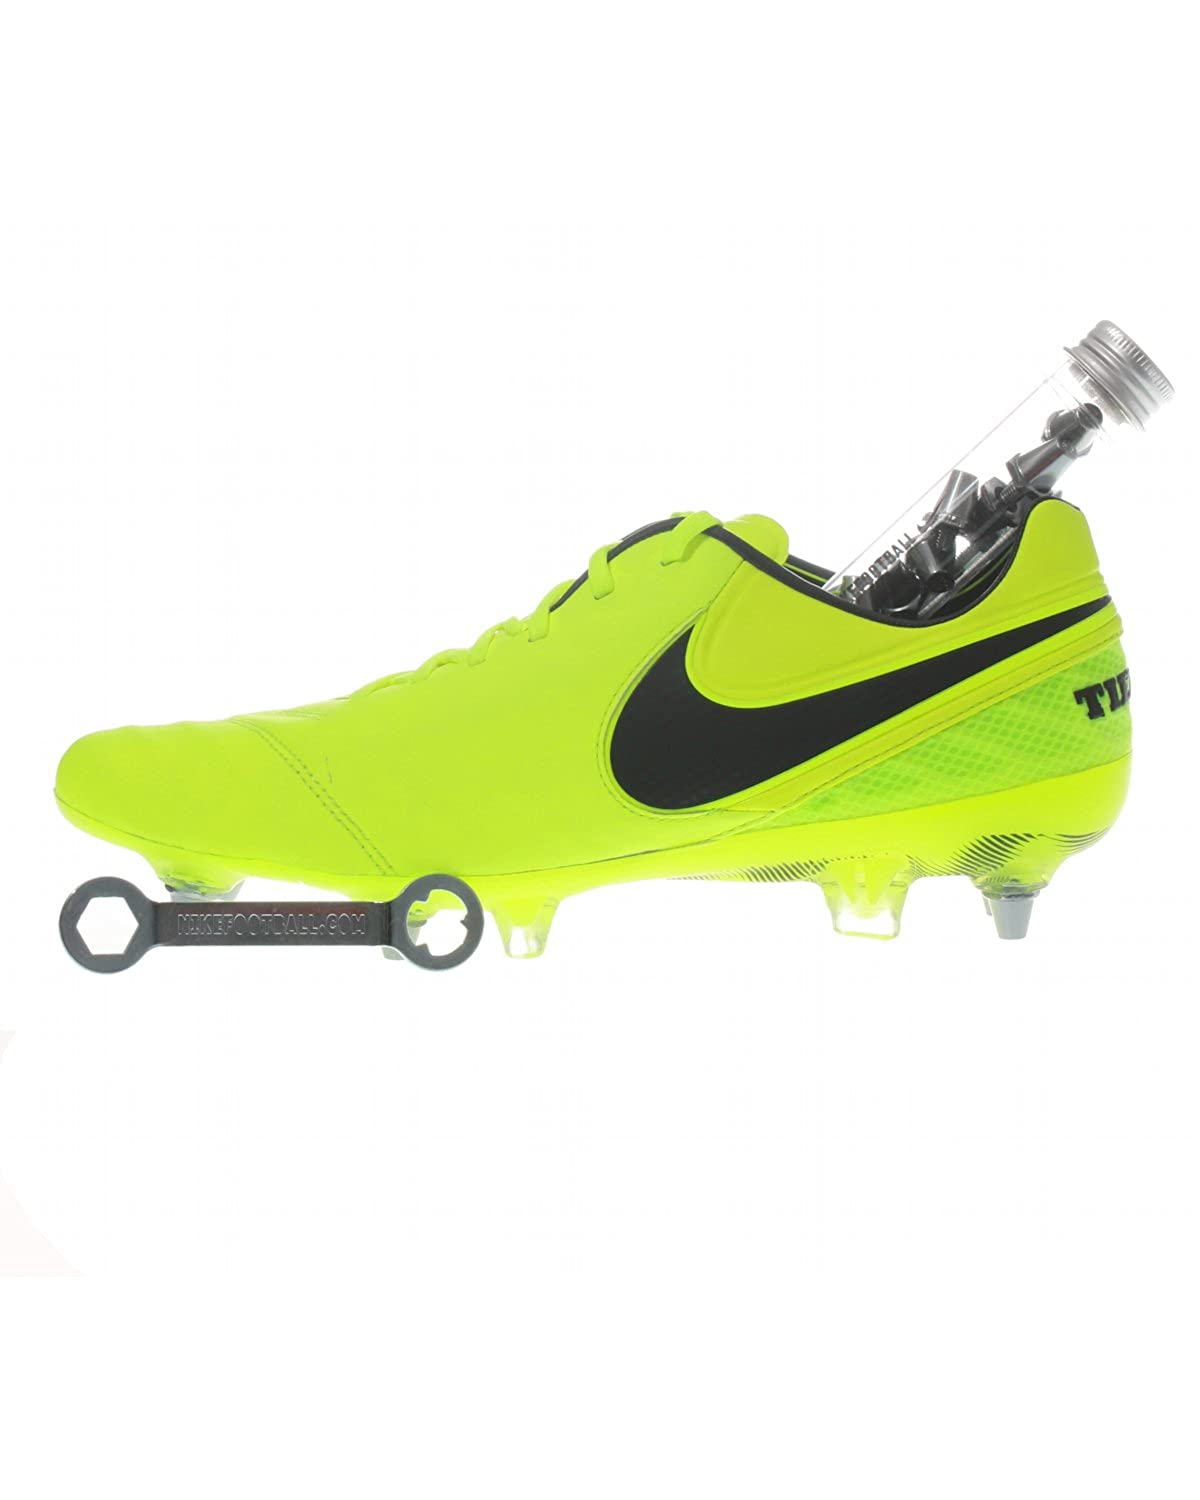 buy popular 76ea3 e81c3 Amazon.com | Nike Tiempo Legend Vi Sg-Pro Mens Football ...